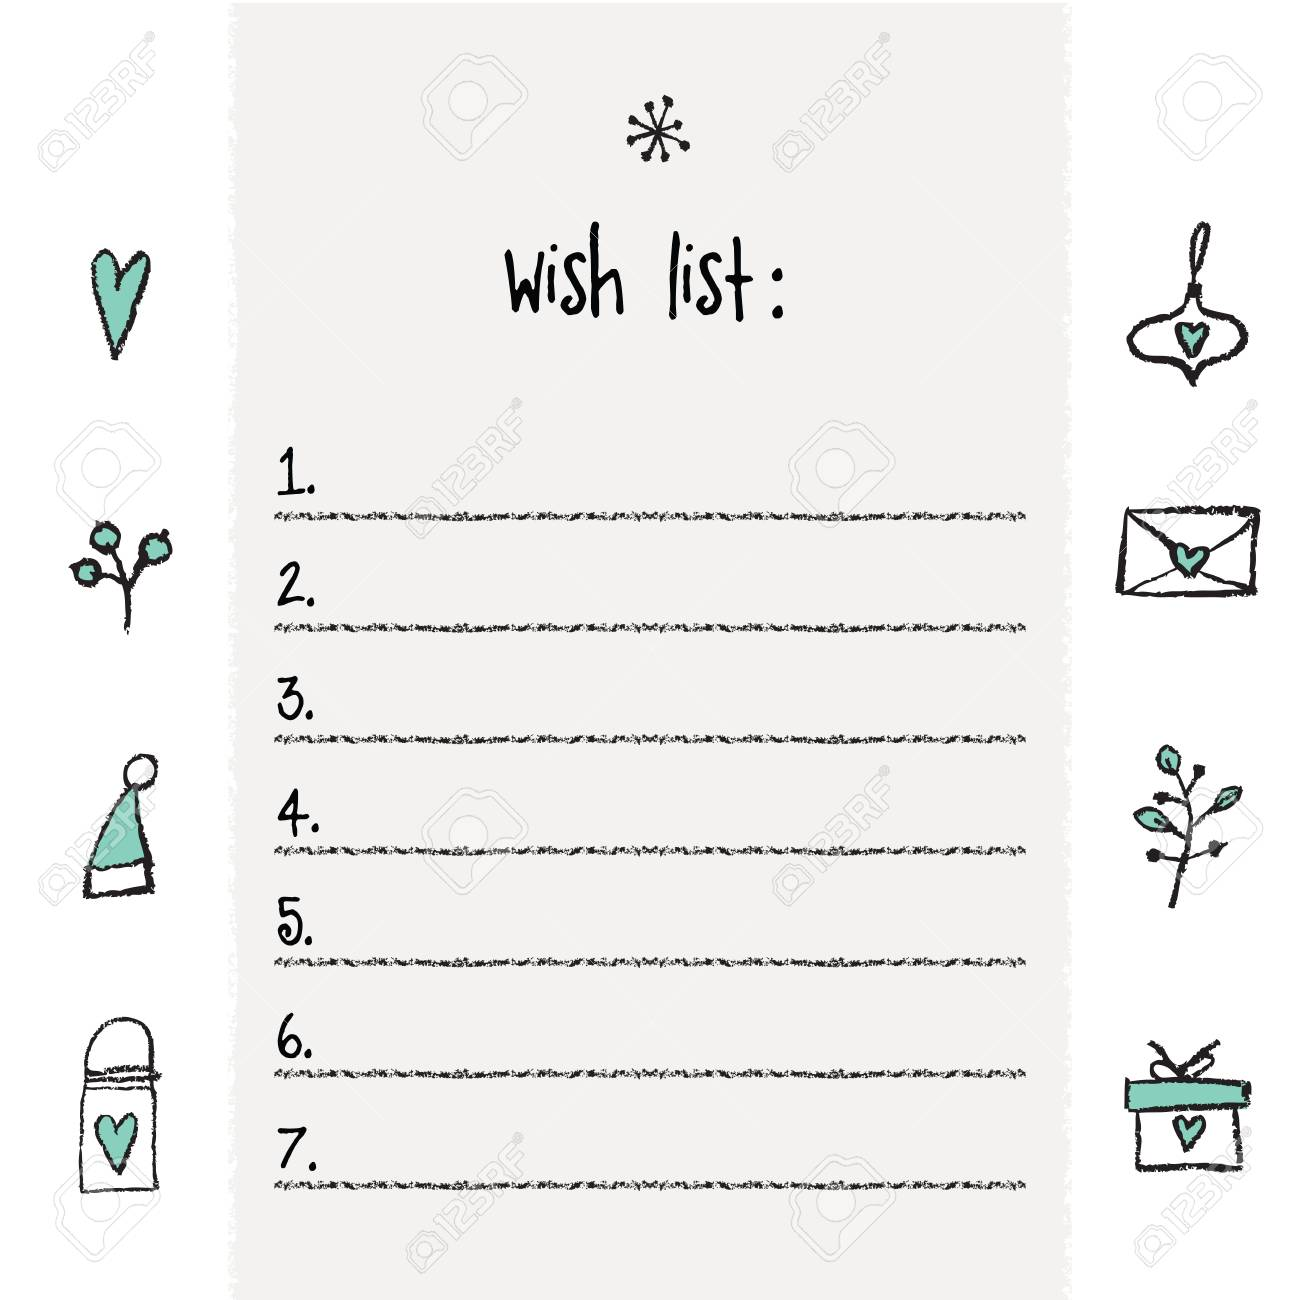 graphic about Wish List Printable identify Xmas want record template. Hand drawn materials. Printable..